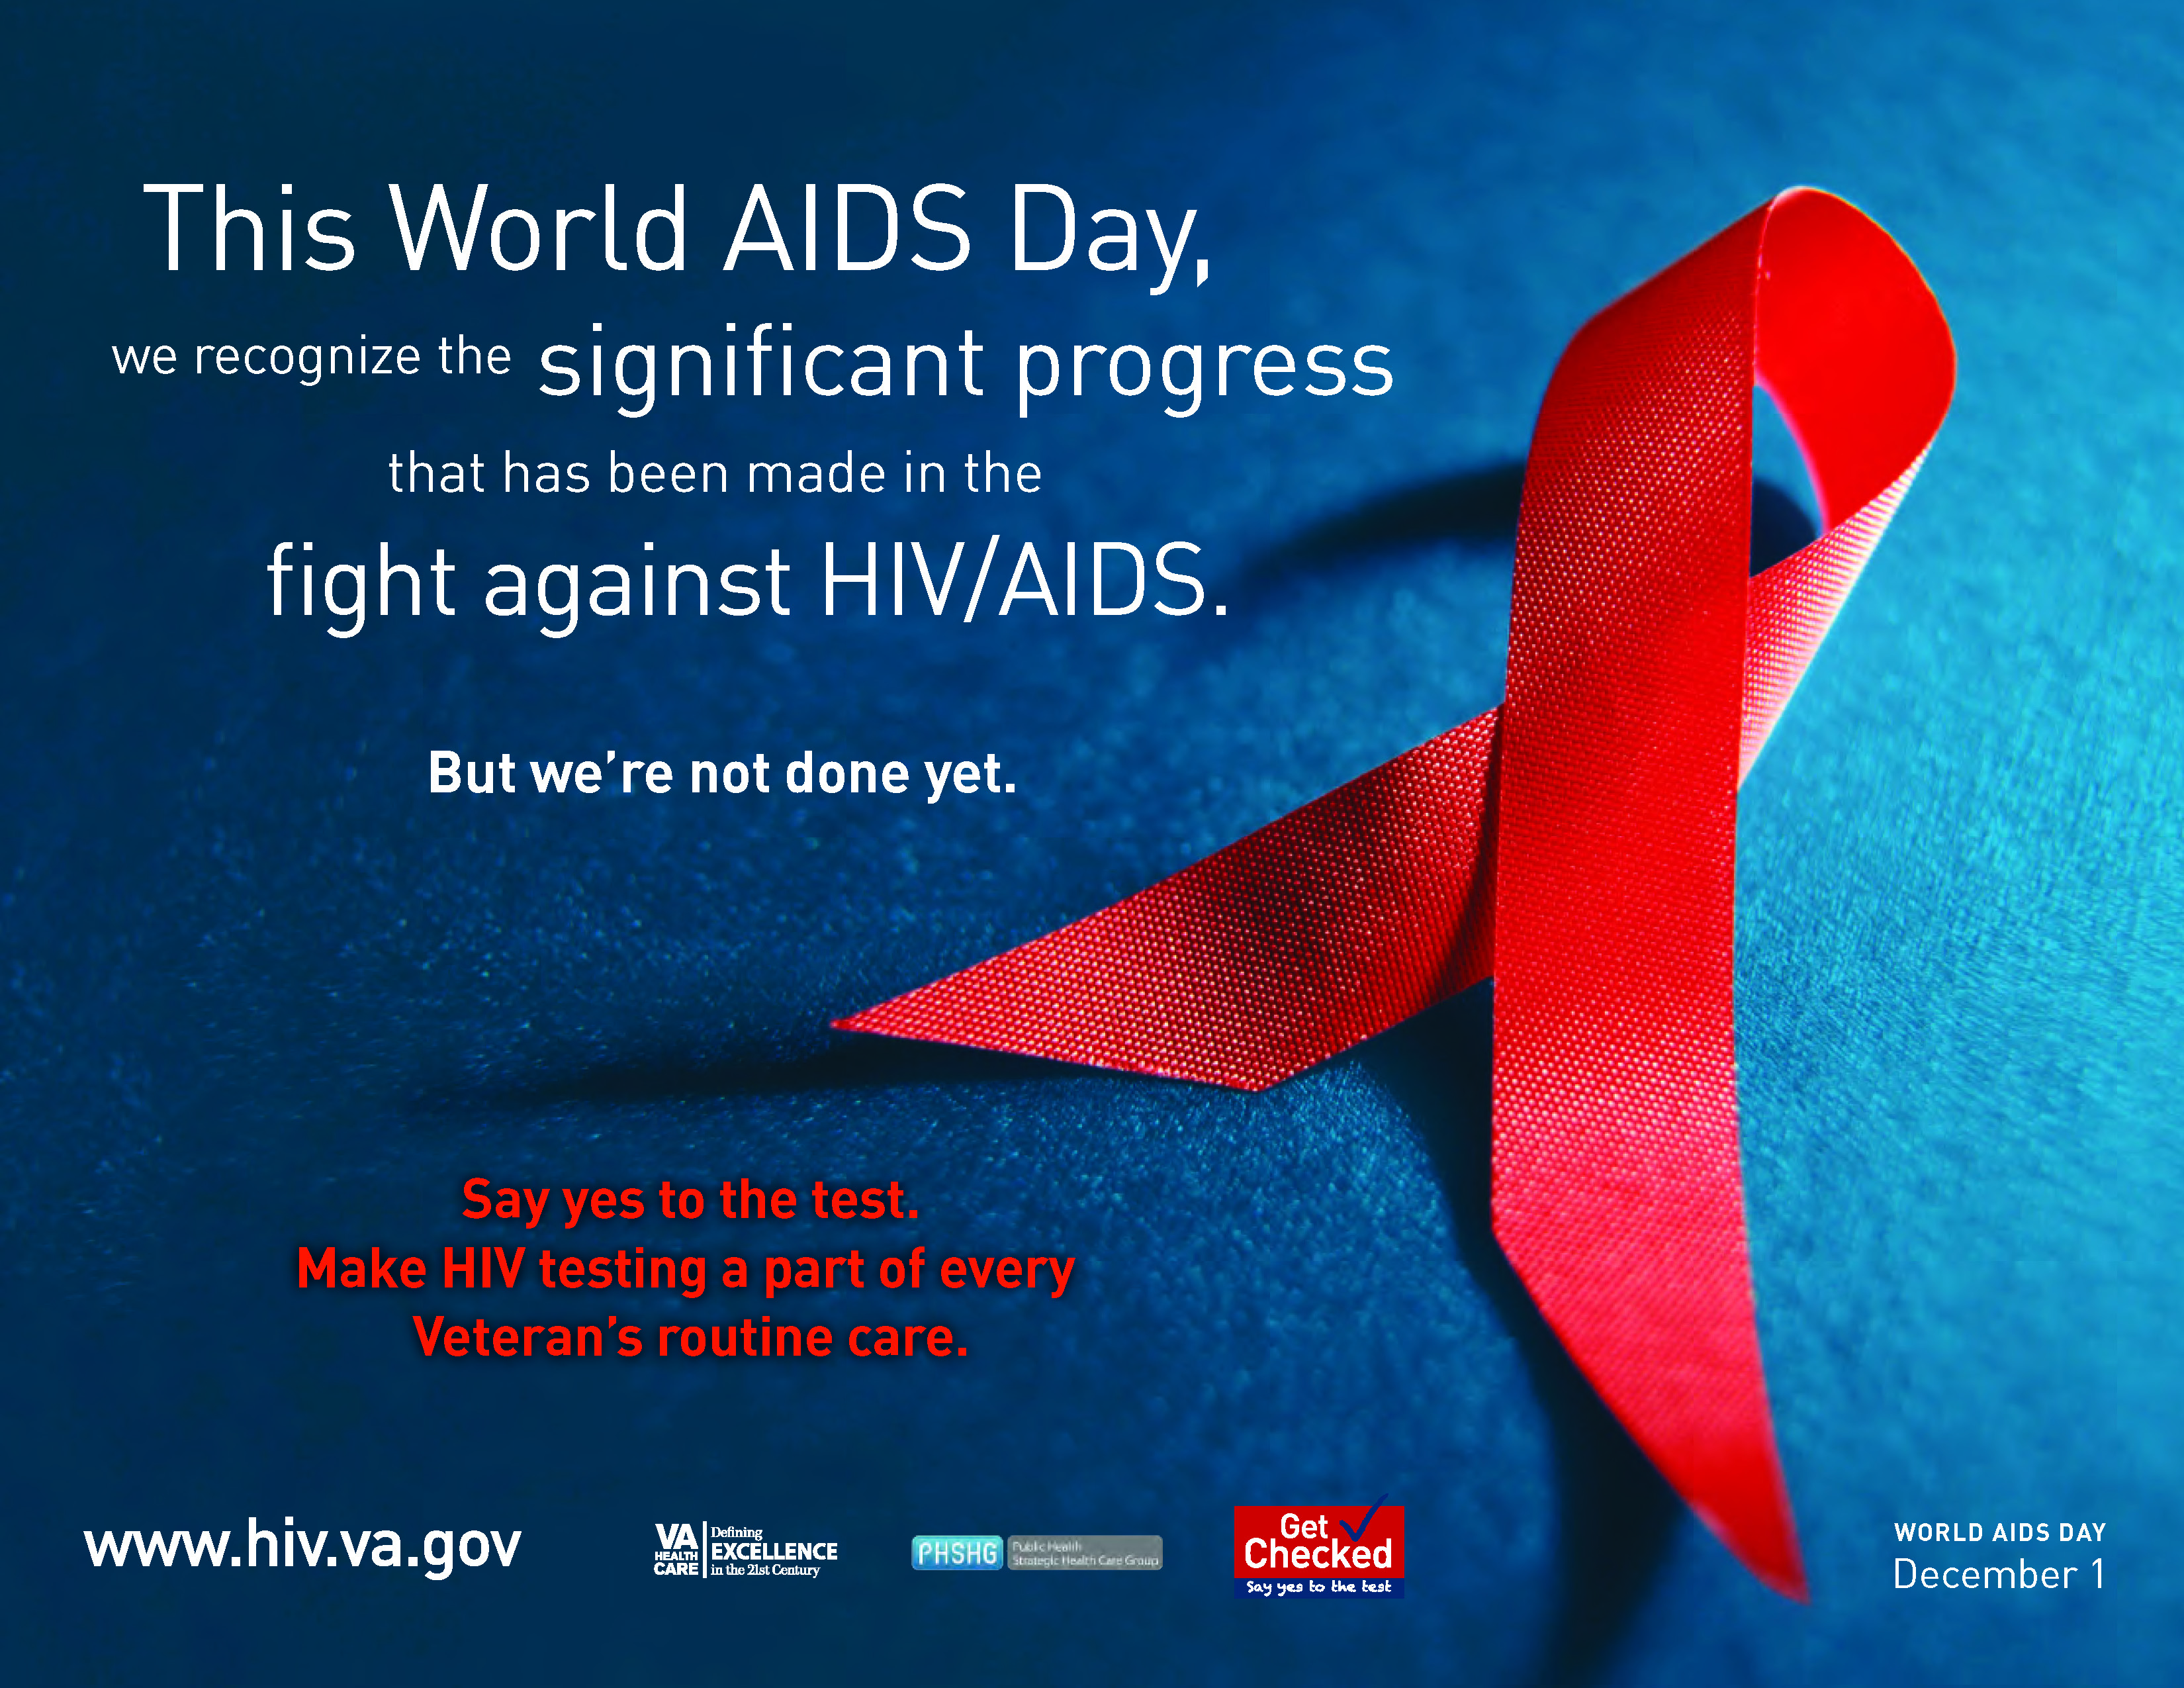 World AIDS Day, December 1, 2010 - VA National HIV/AIDS Website